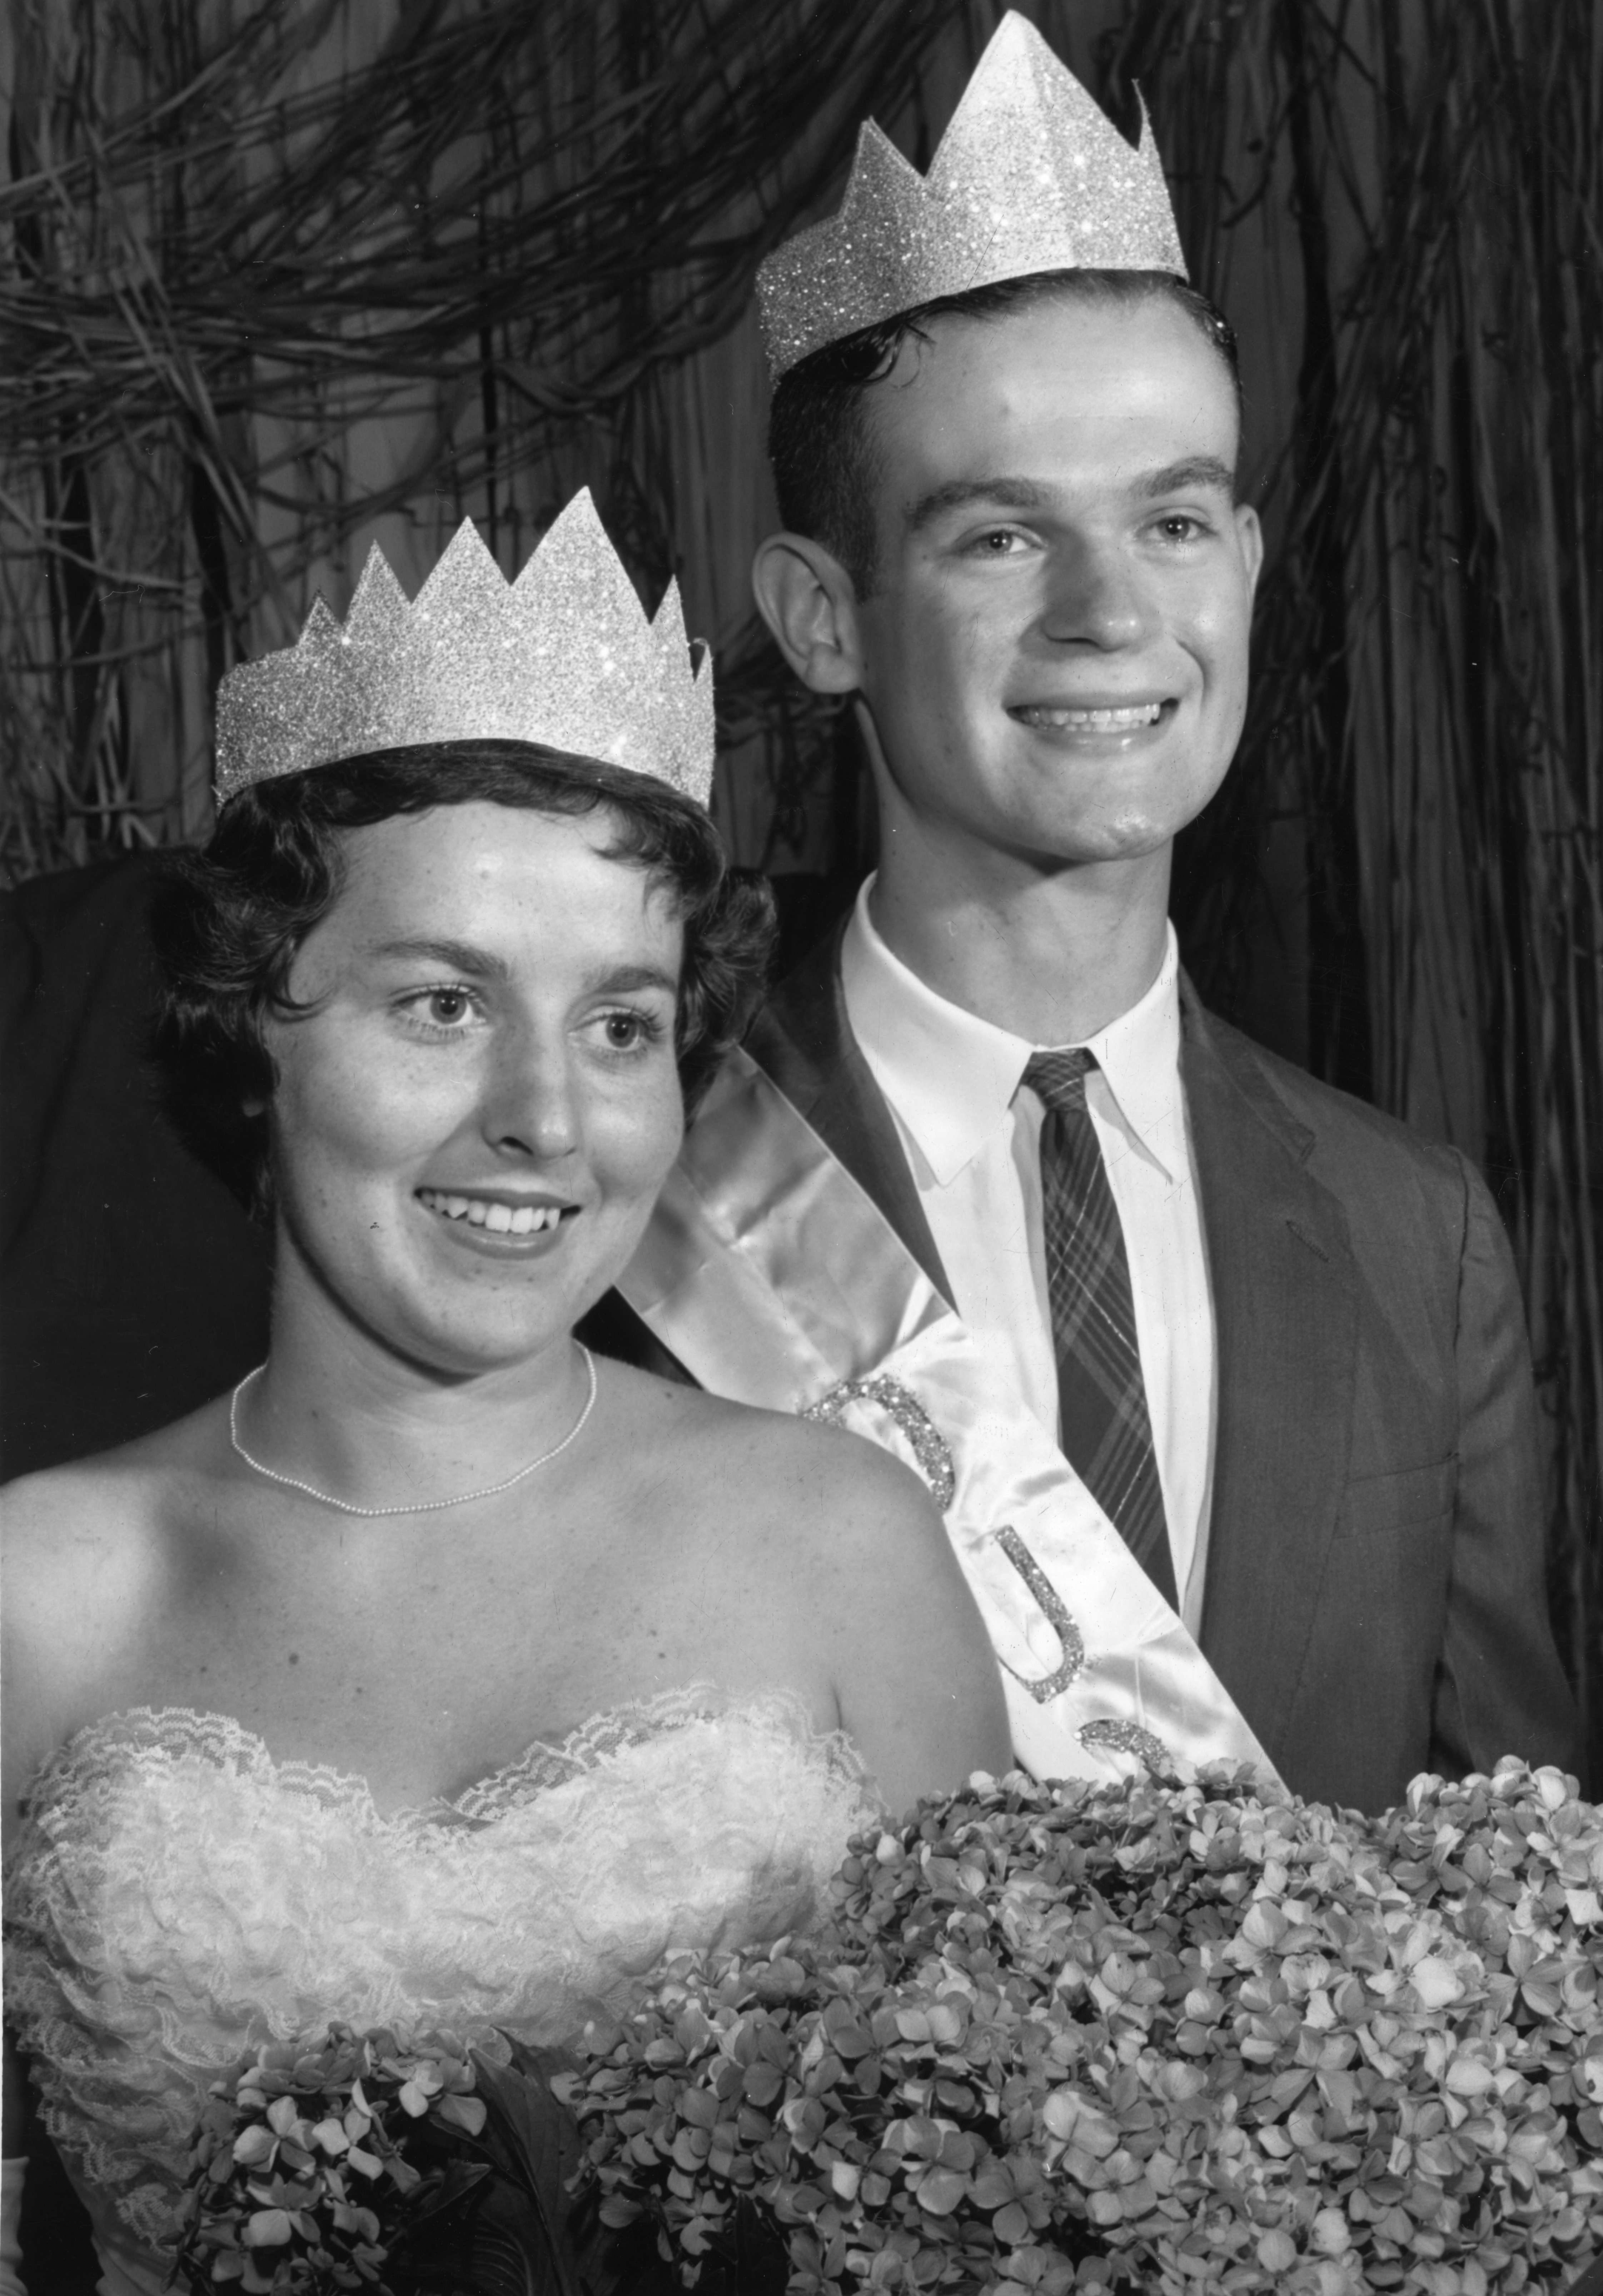 North Carolina State 4-H Club king and queen of health